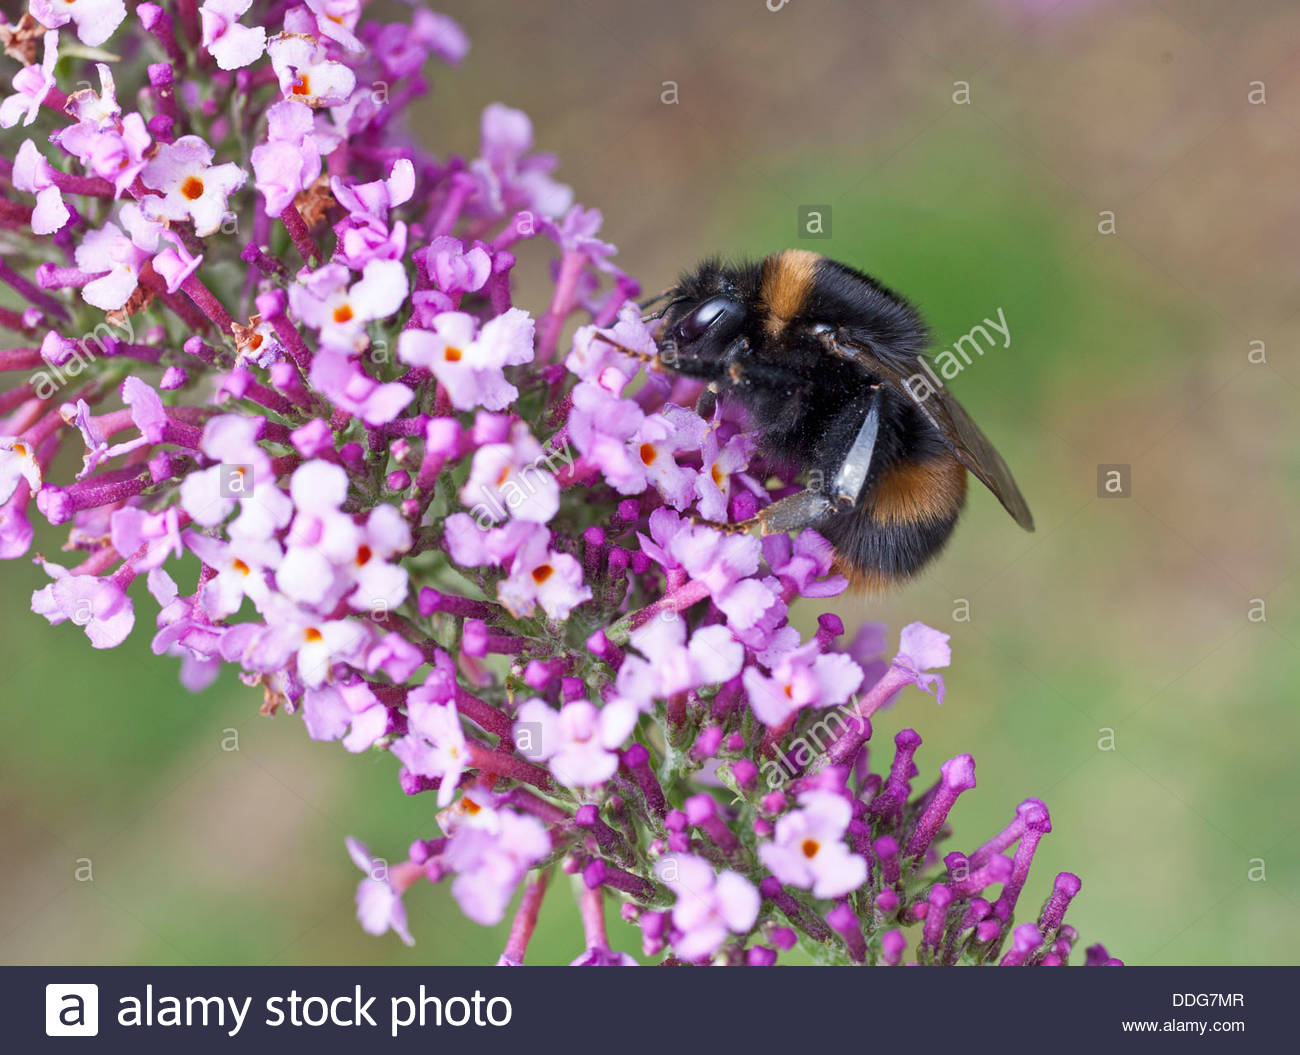 A new Queen Buff-tailed Bumblebee, Bombus terrestris,  feeding on nectar from a Buddleja/Buddeia flower panicle - Stock Image